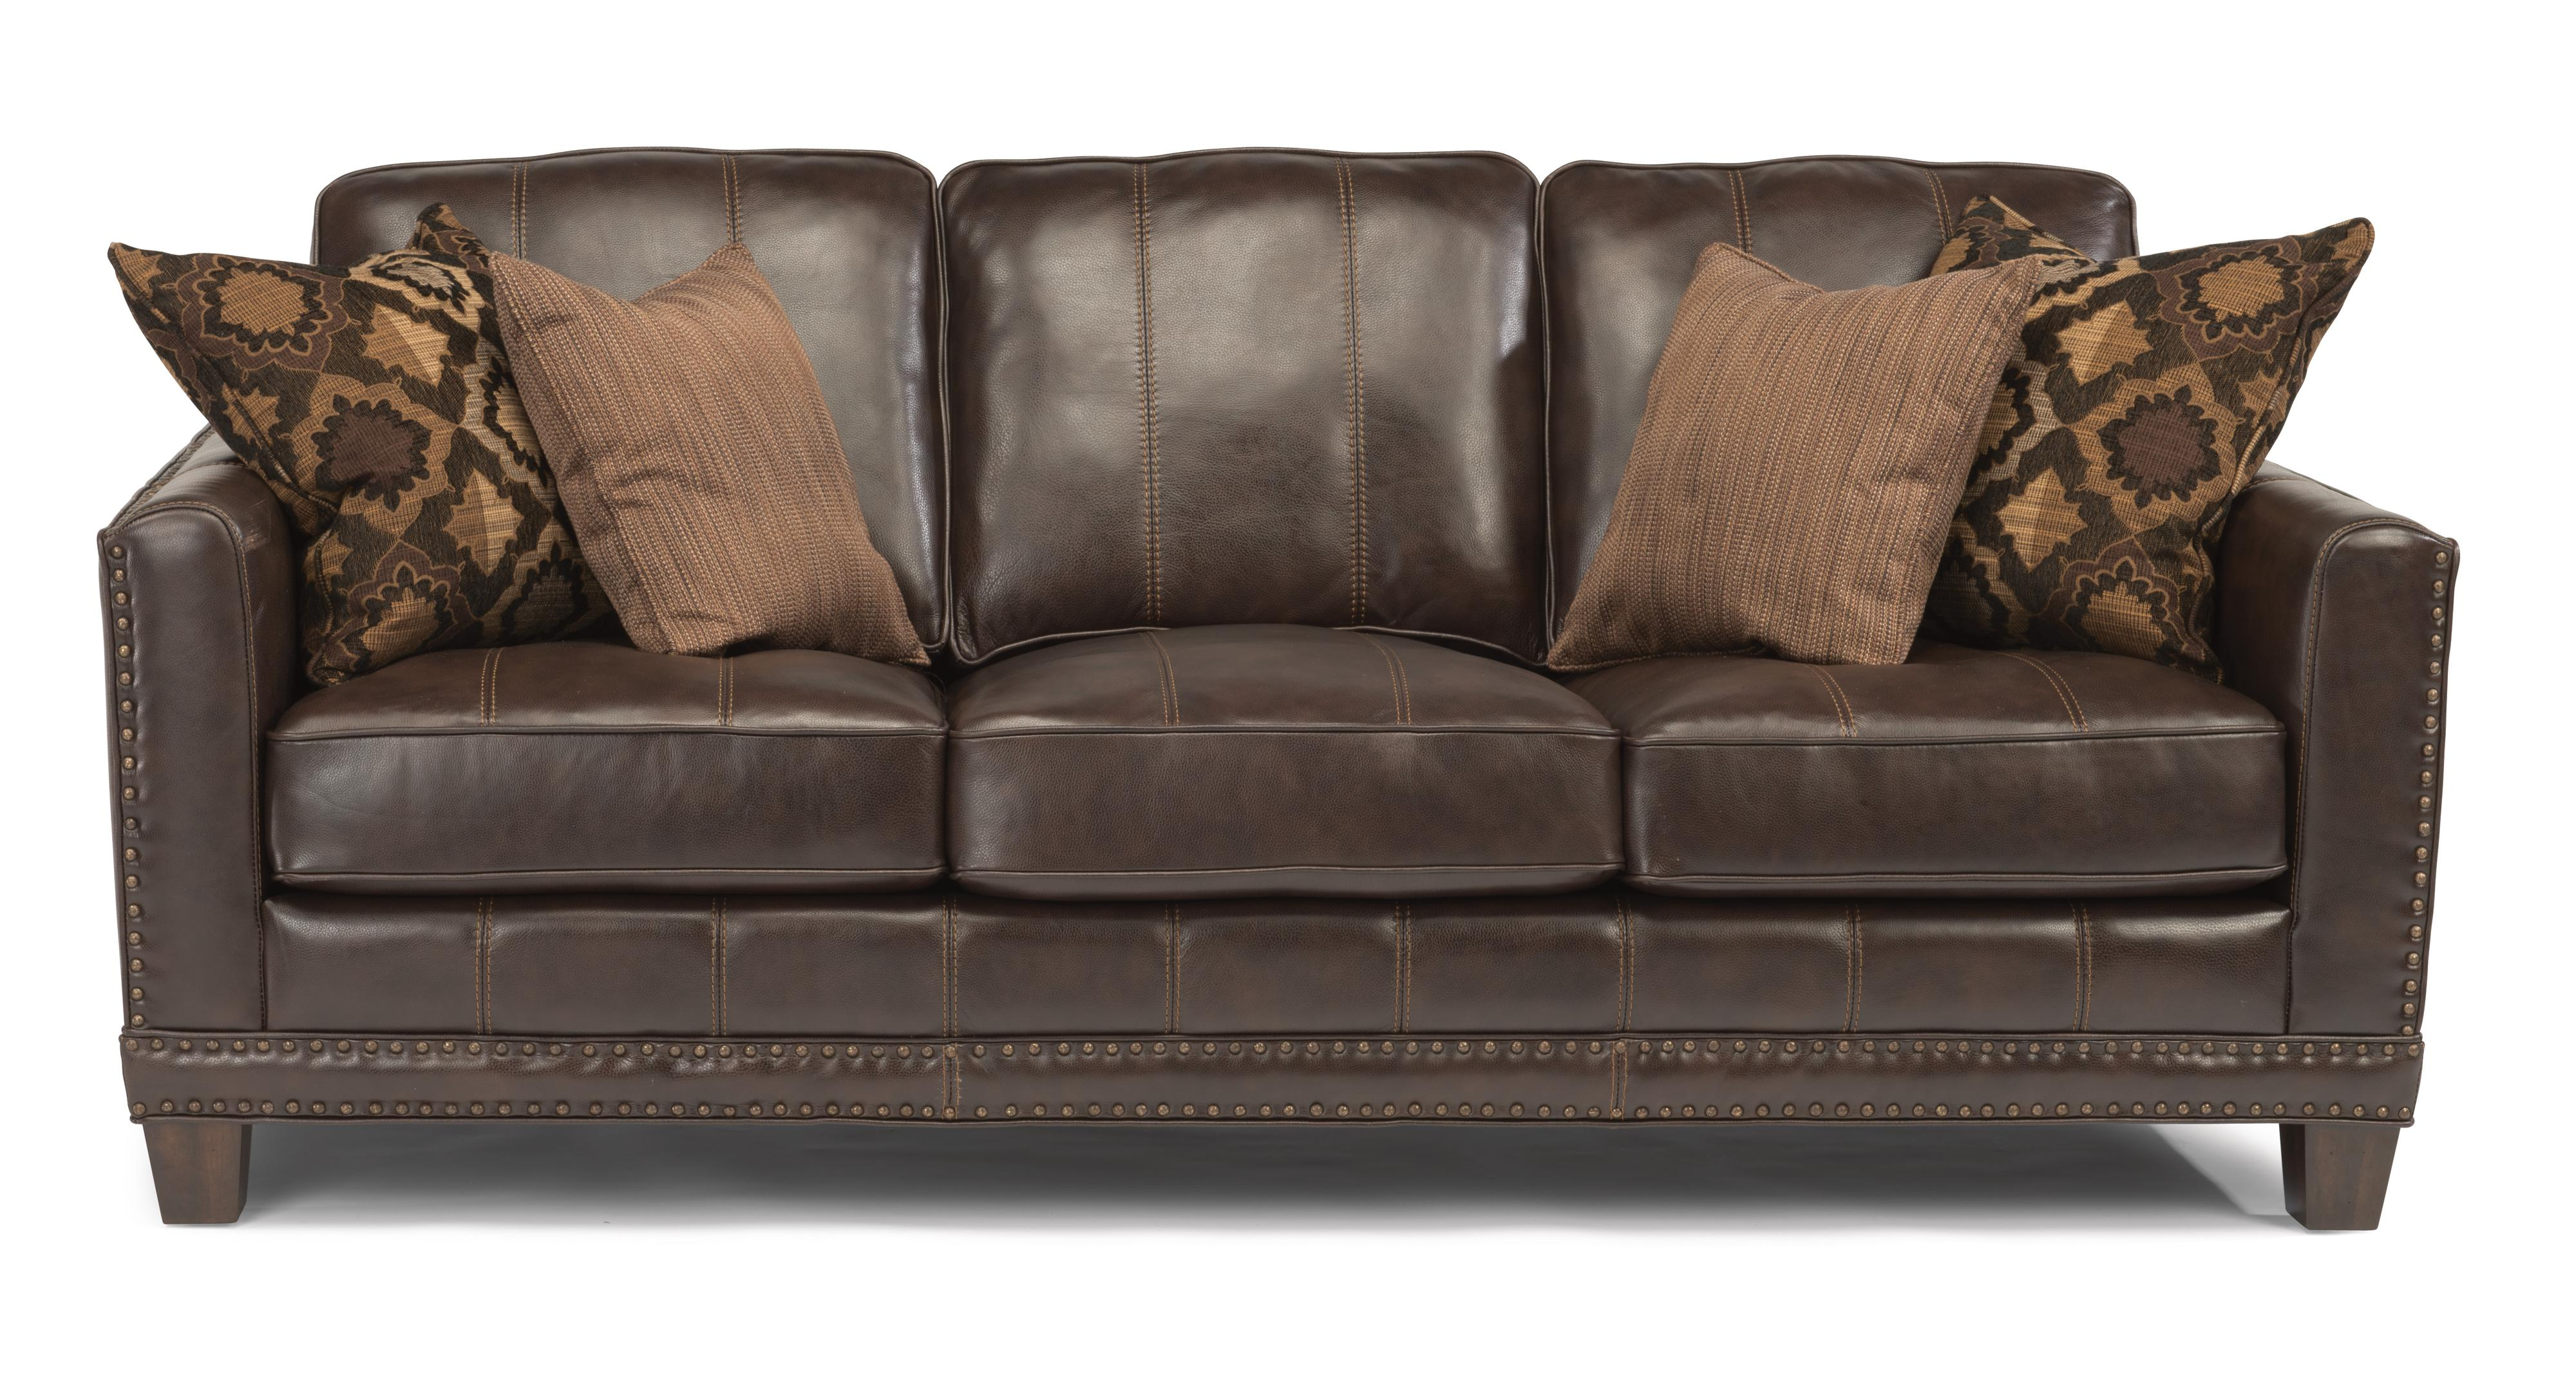 Flexsteel Latitudes - Port Royal Sofa - Item Number: 1373-31